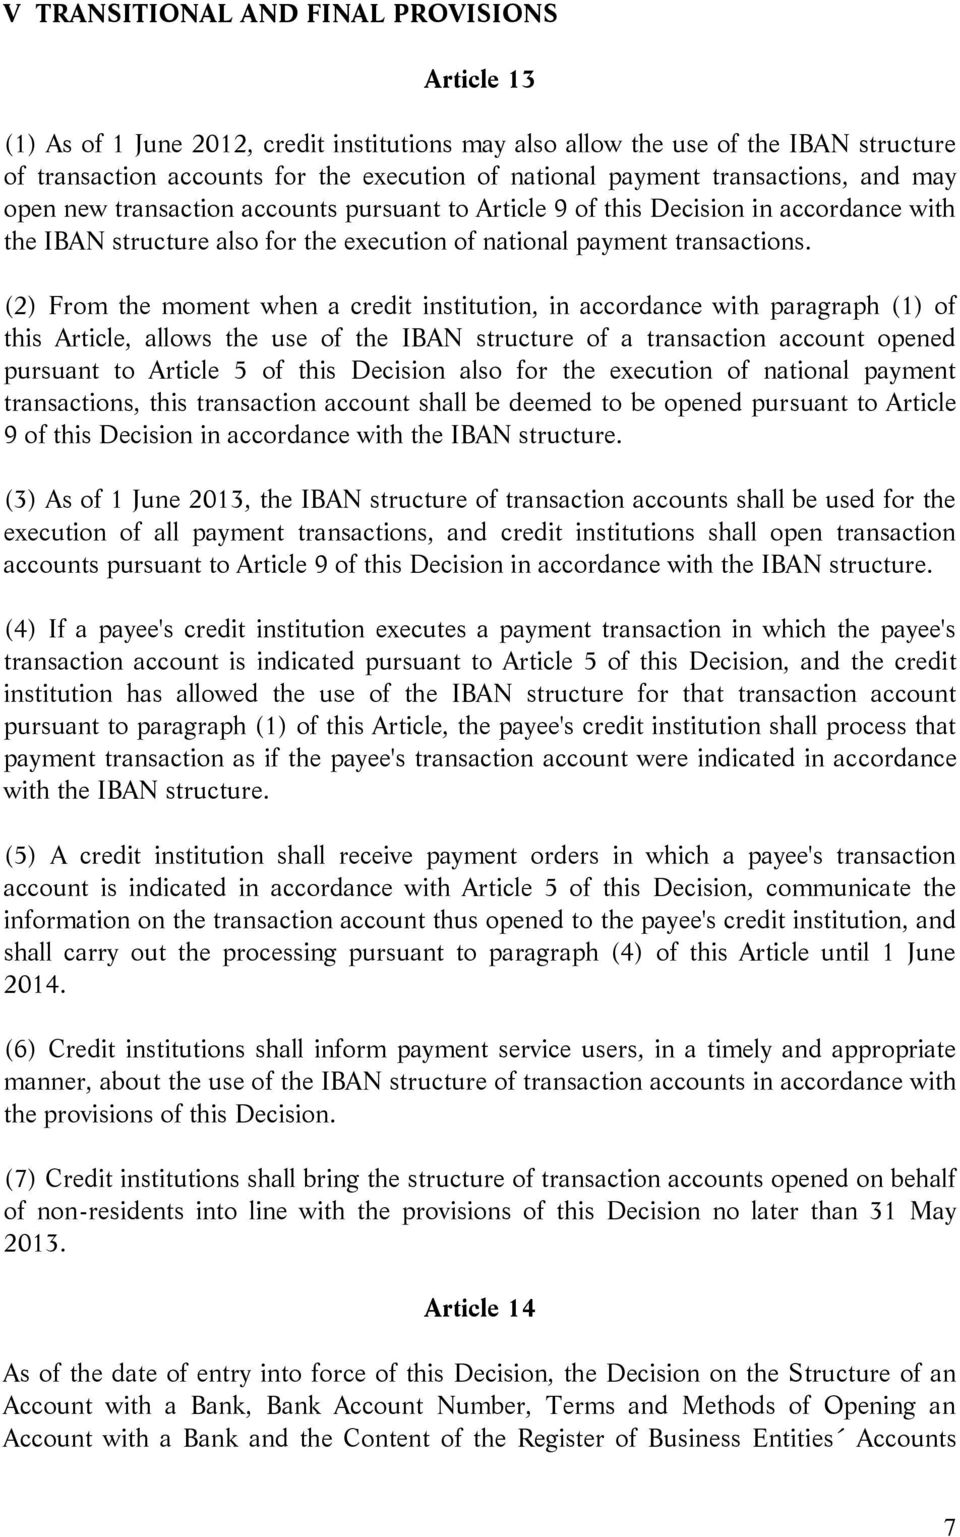 (2) From the moment when a credit institution, in accordance with paragraph (1) of this Article, allows the use of the IBAN structure of a transaction account opened pursuant to Article 5 of this